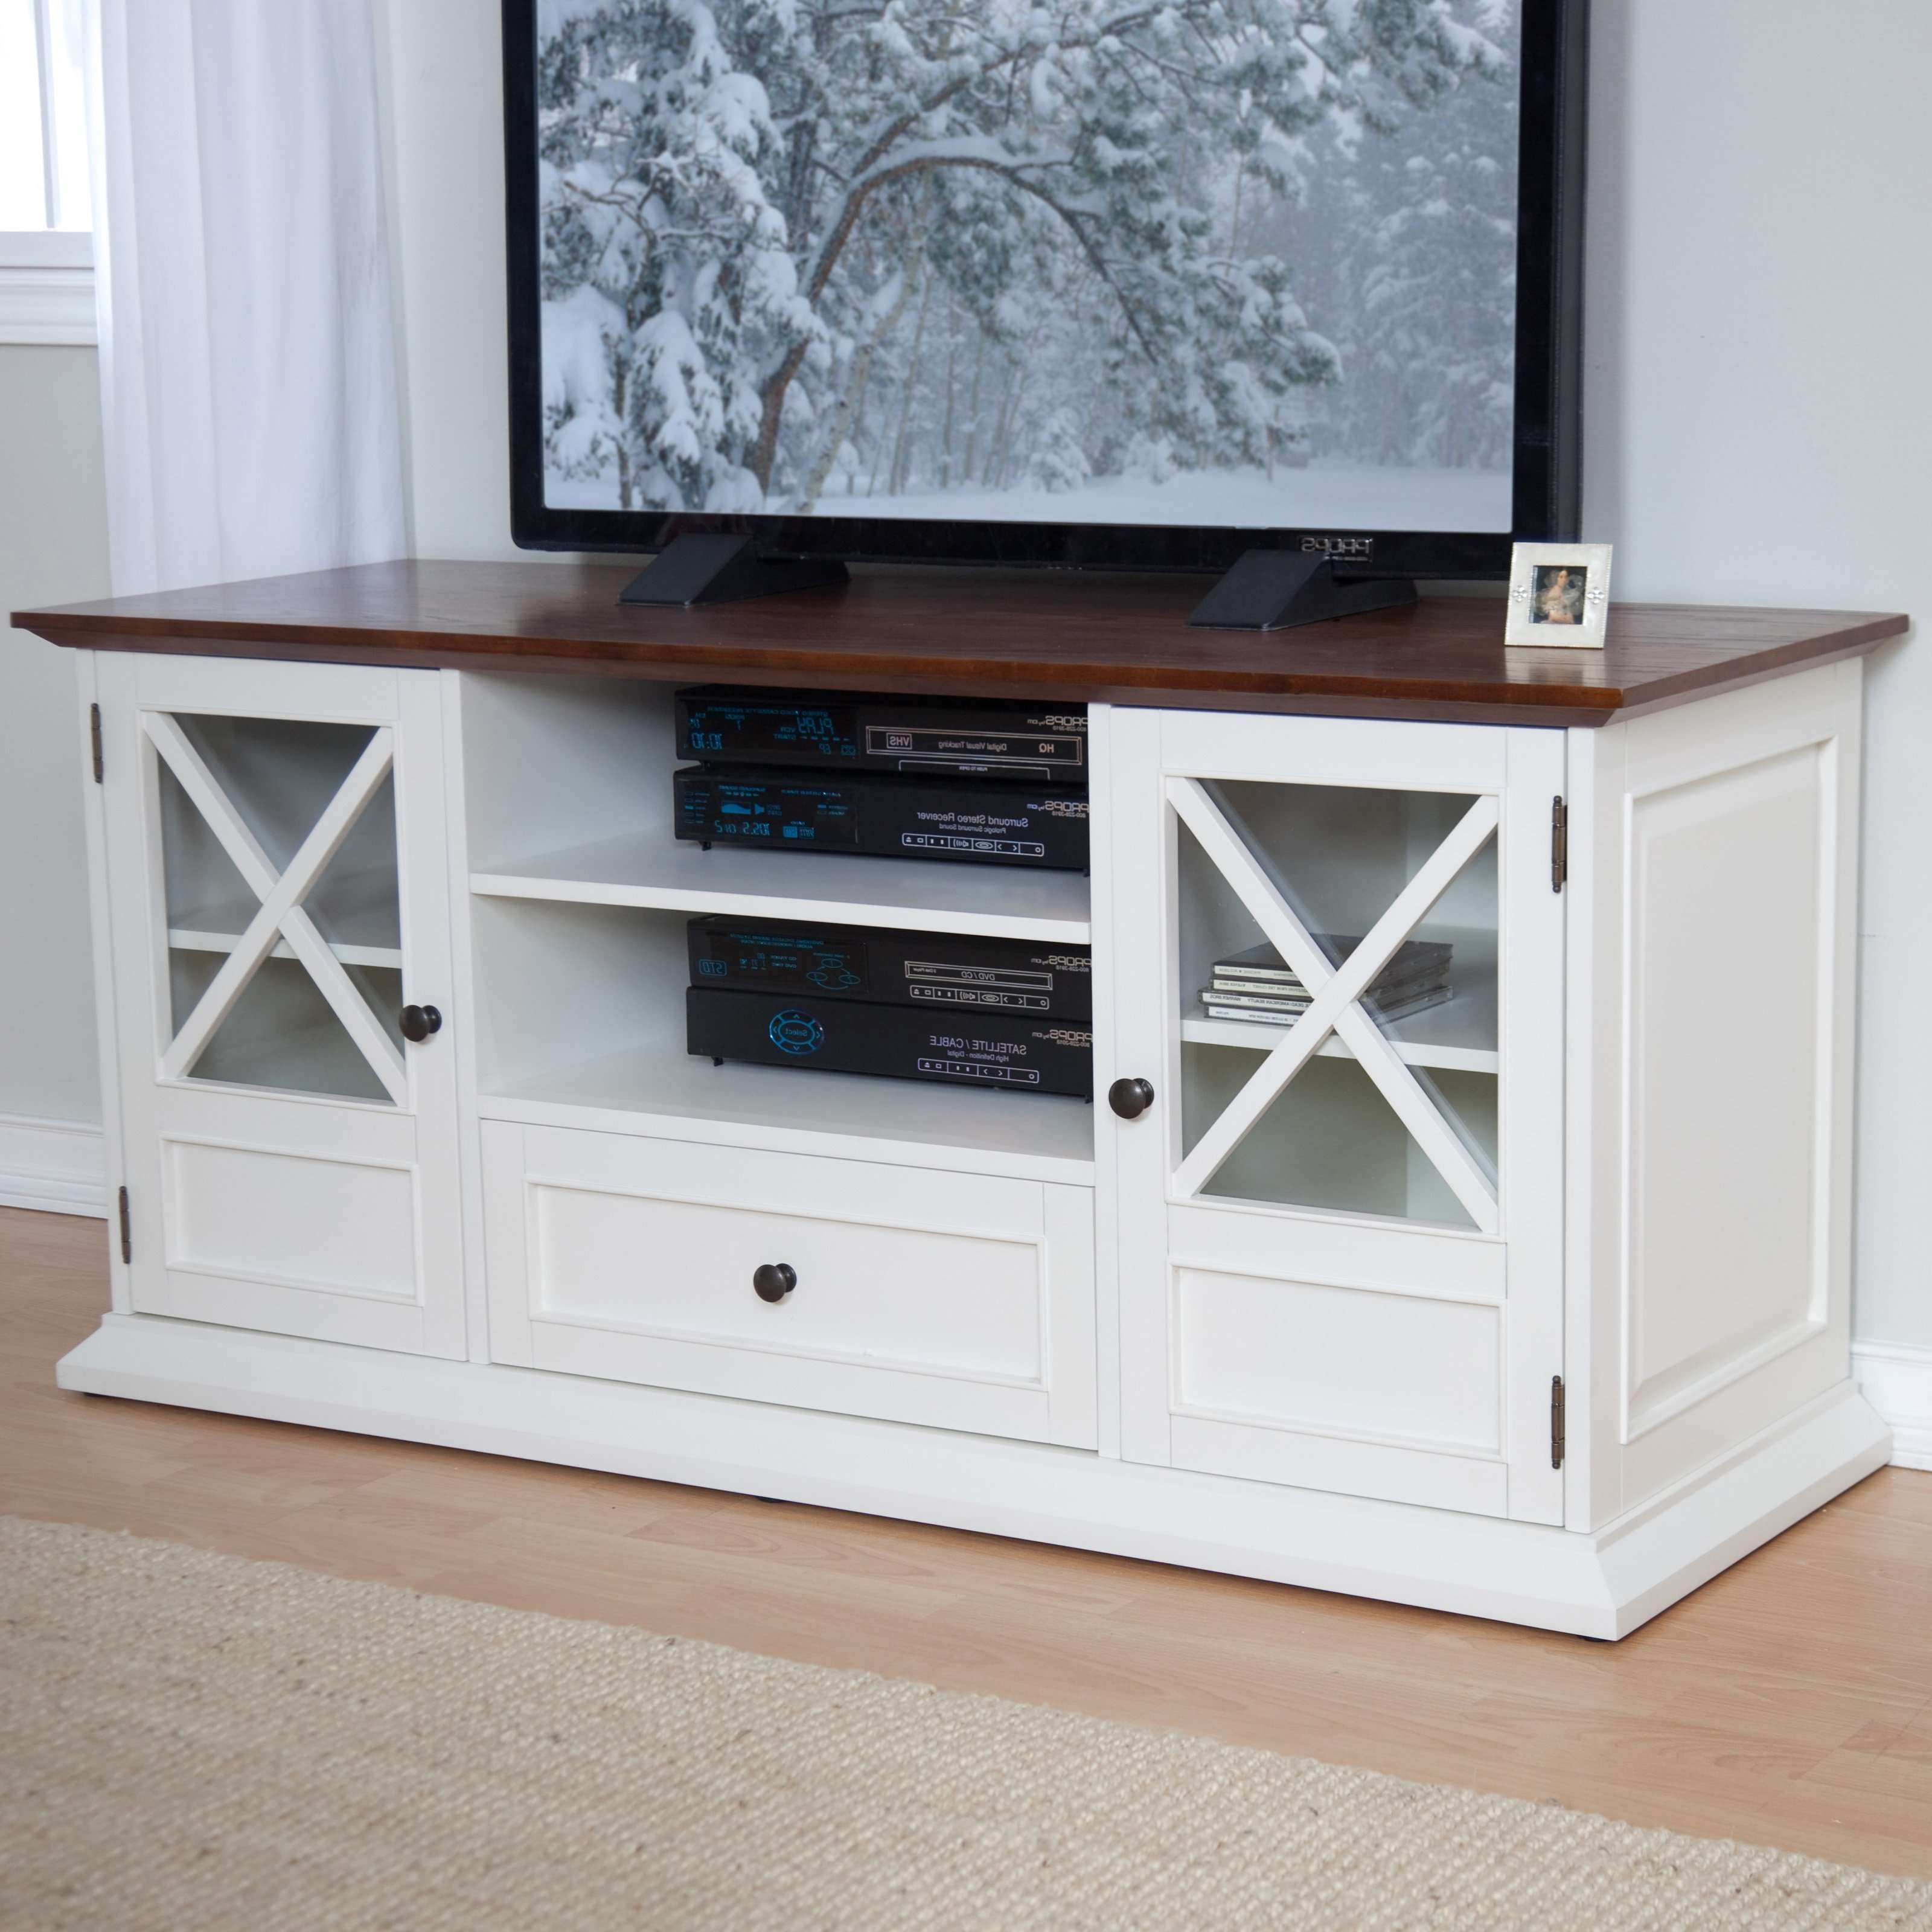 Tv Stands & Entertainment Centers | Hayneedle Within 24 Inch Tall Tv Stands (View 15 of 15)